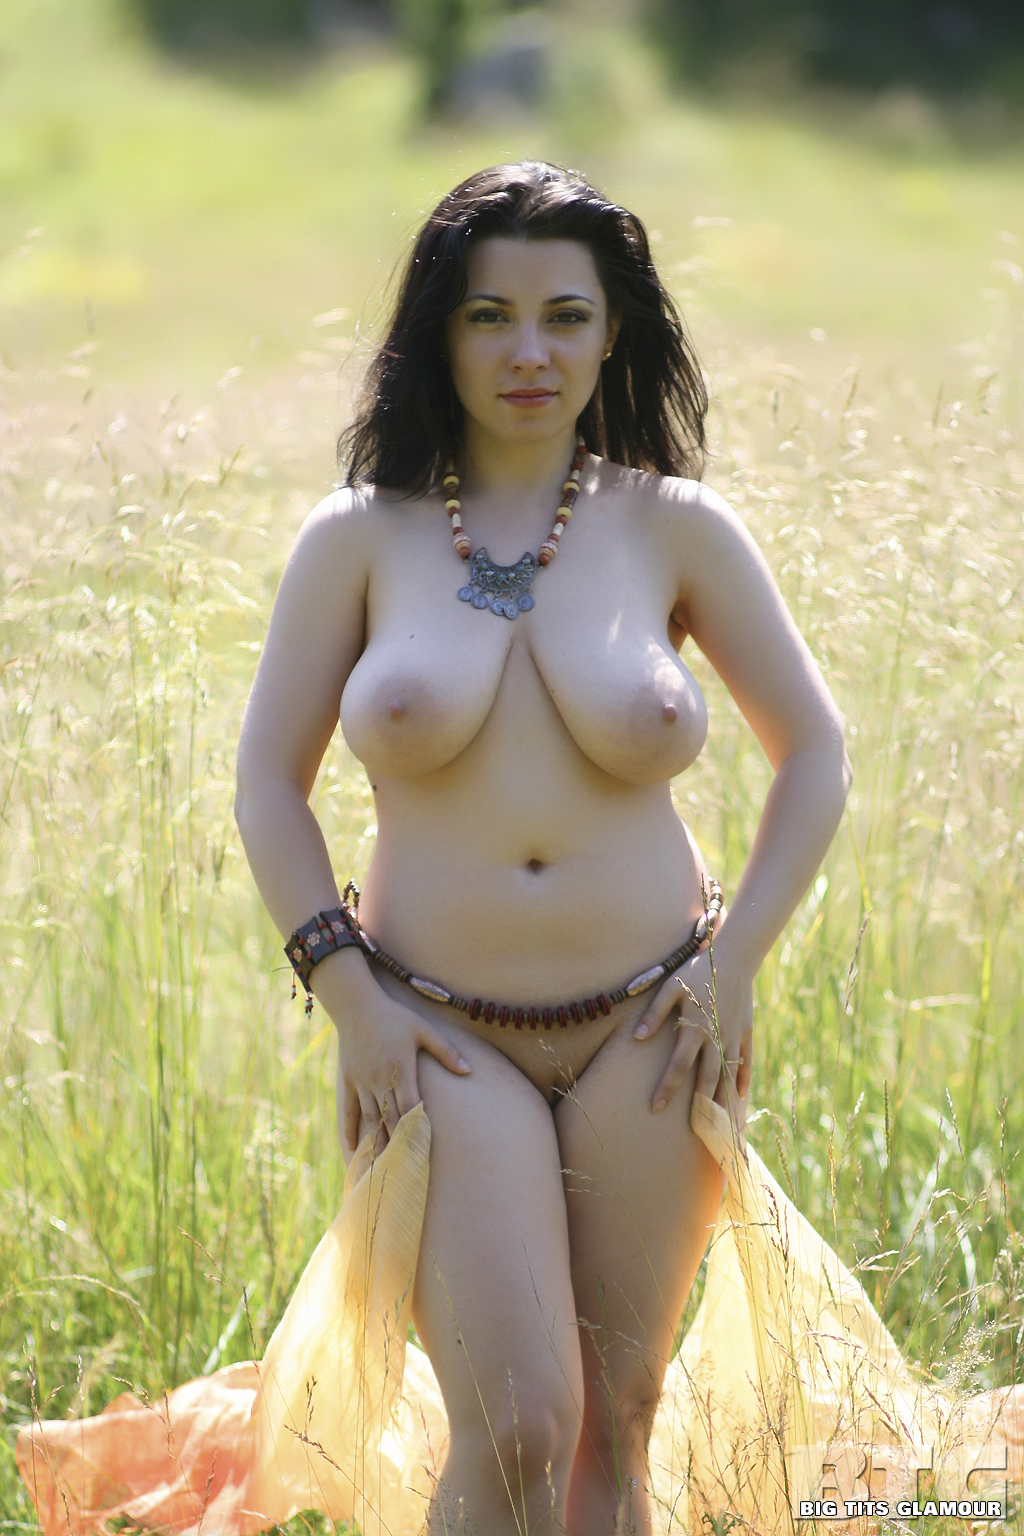 Glamour natural tits galleries